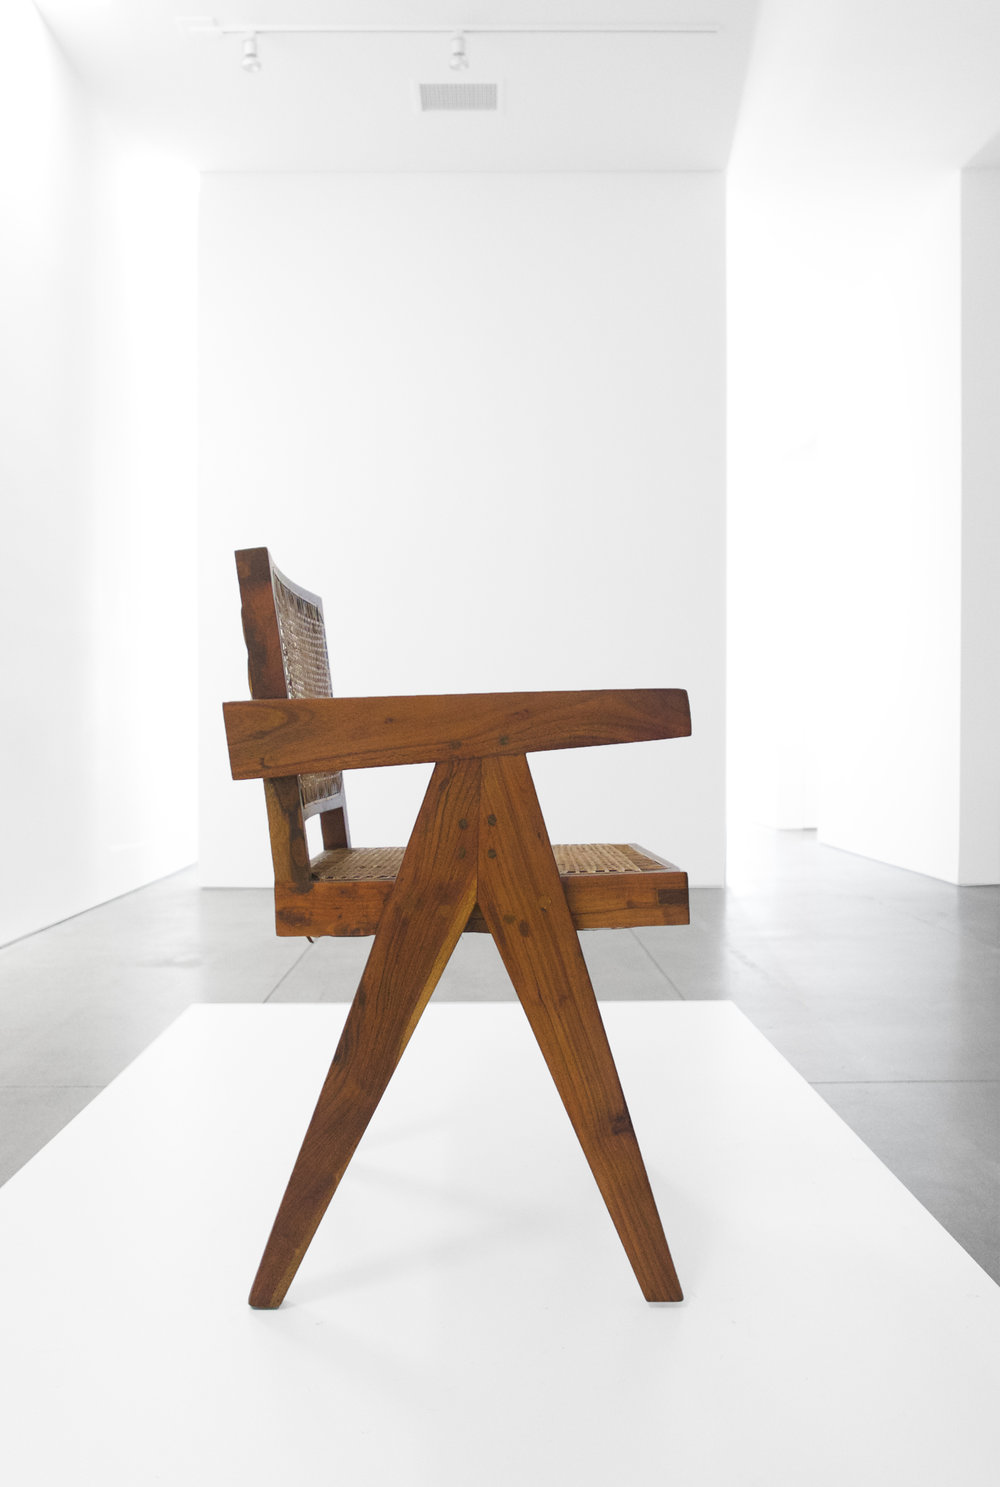 Pierre Jeanneret, Teak Conference Chair from the City of Chandigarh, India, c. 1952, 31 H x 18 W x 19.75 D inches_4.jpg